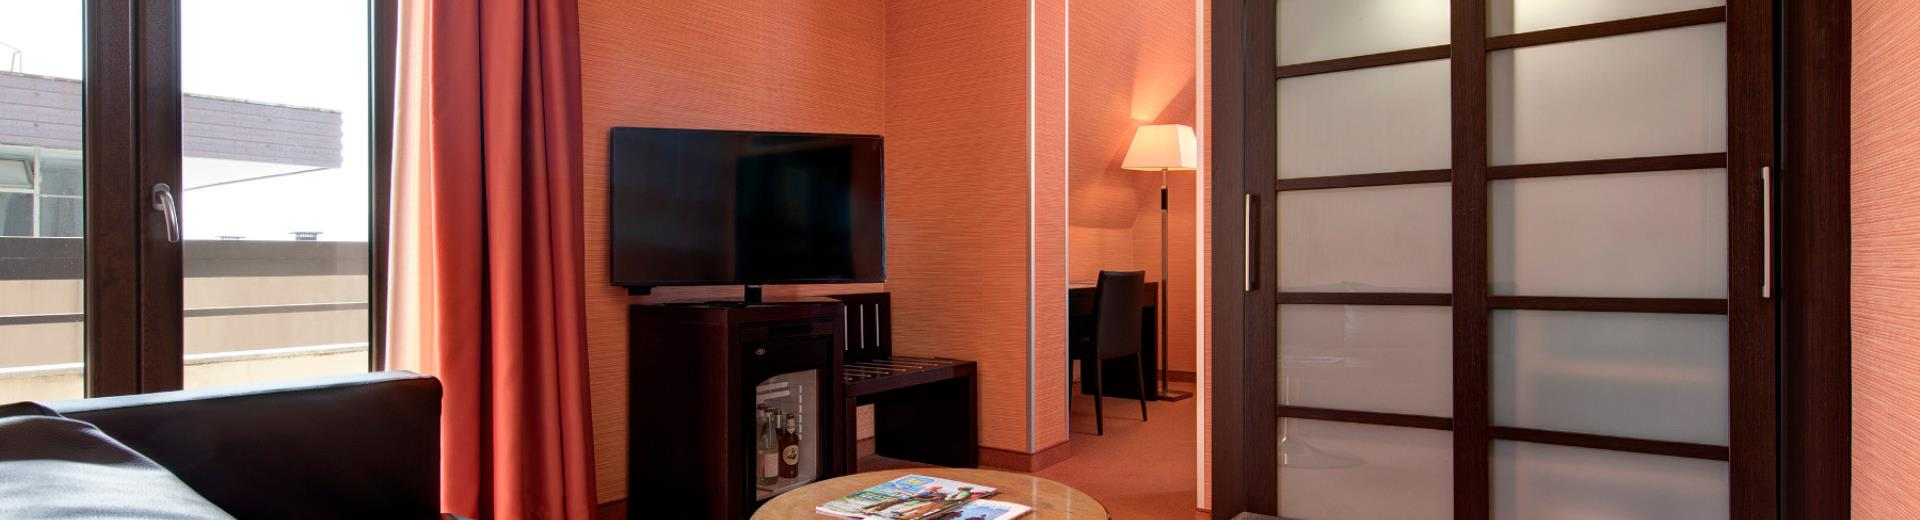 Junior Suite - Best Western Gorizia Palace Hotel